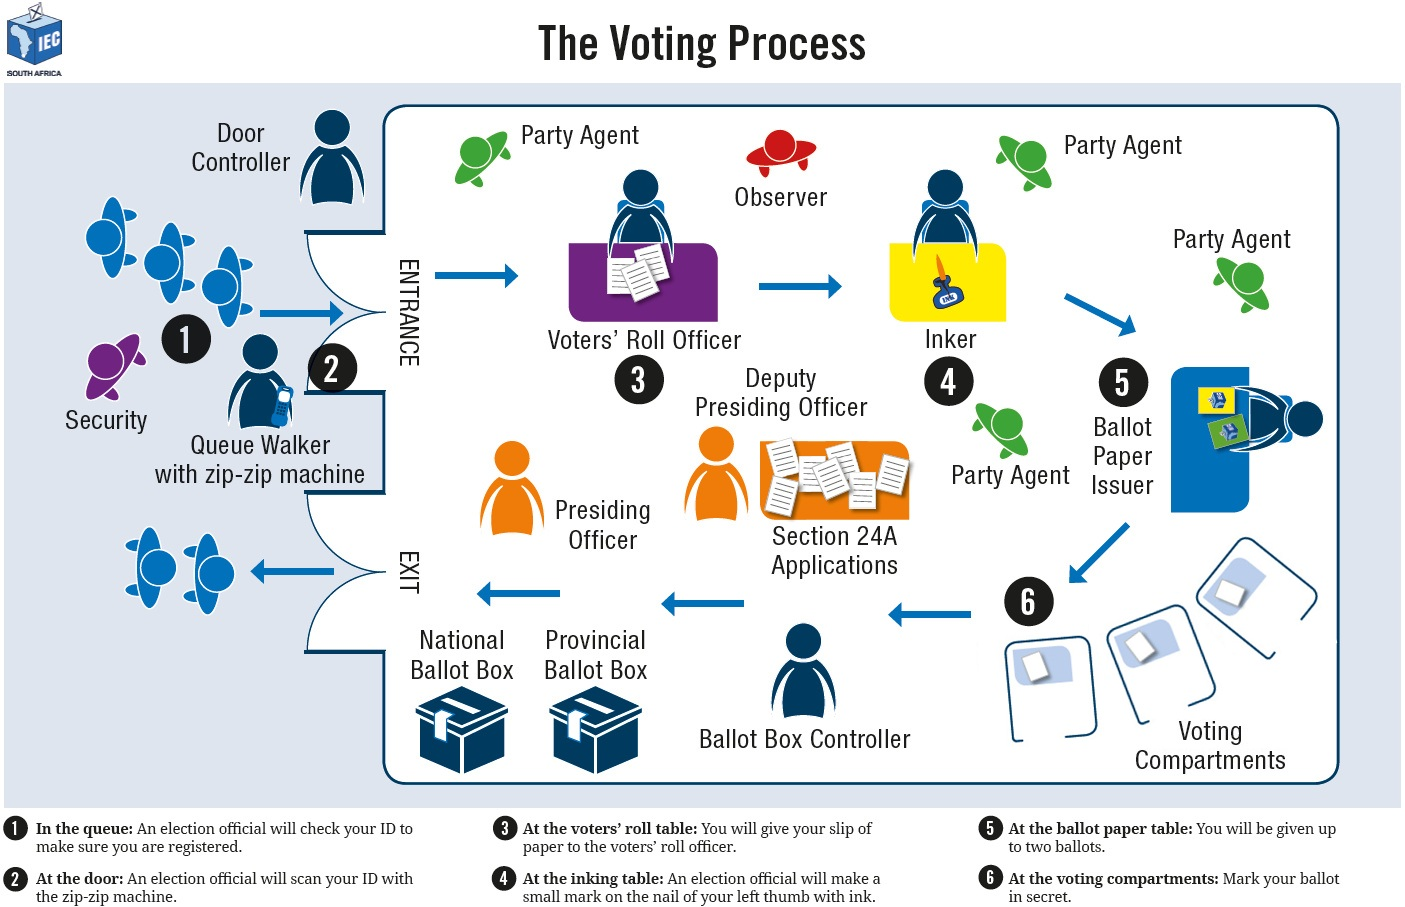 Electoral Commission : Voting